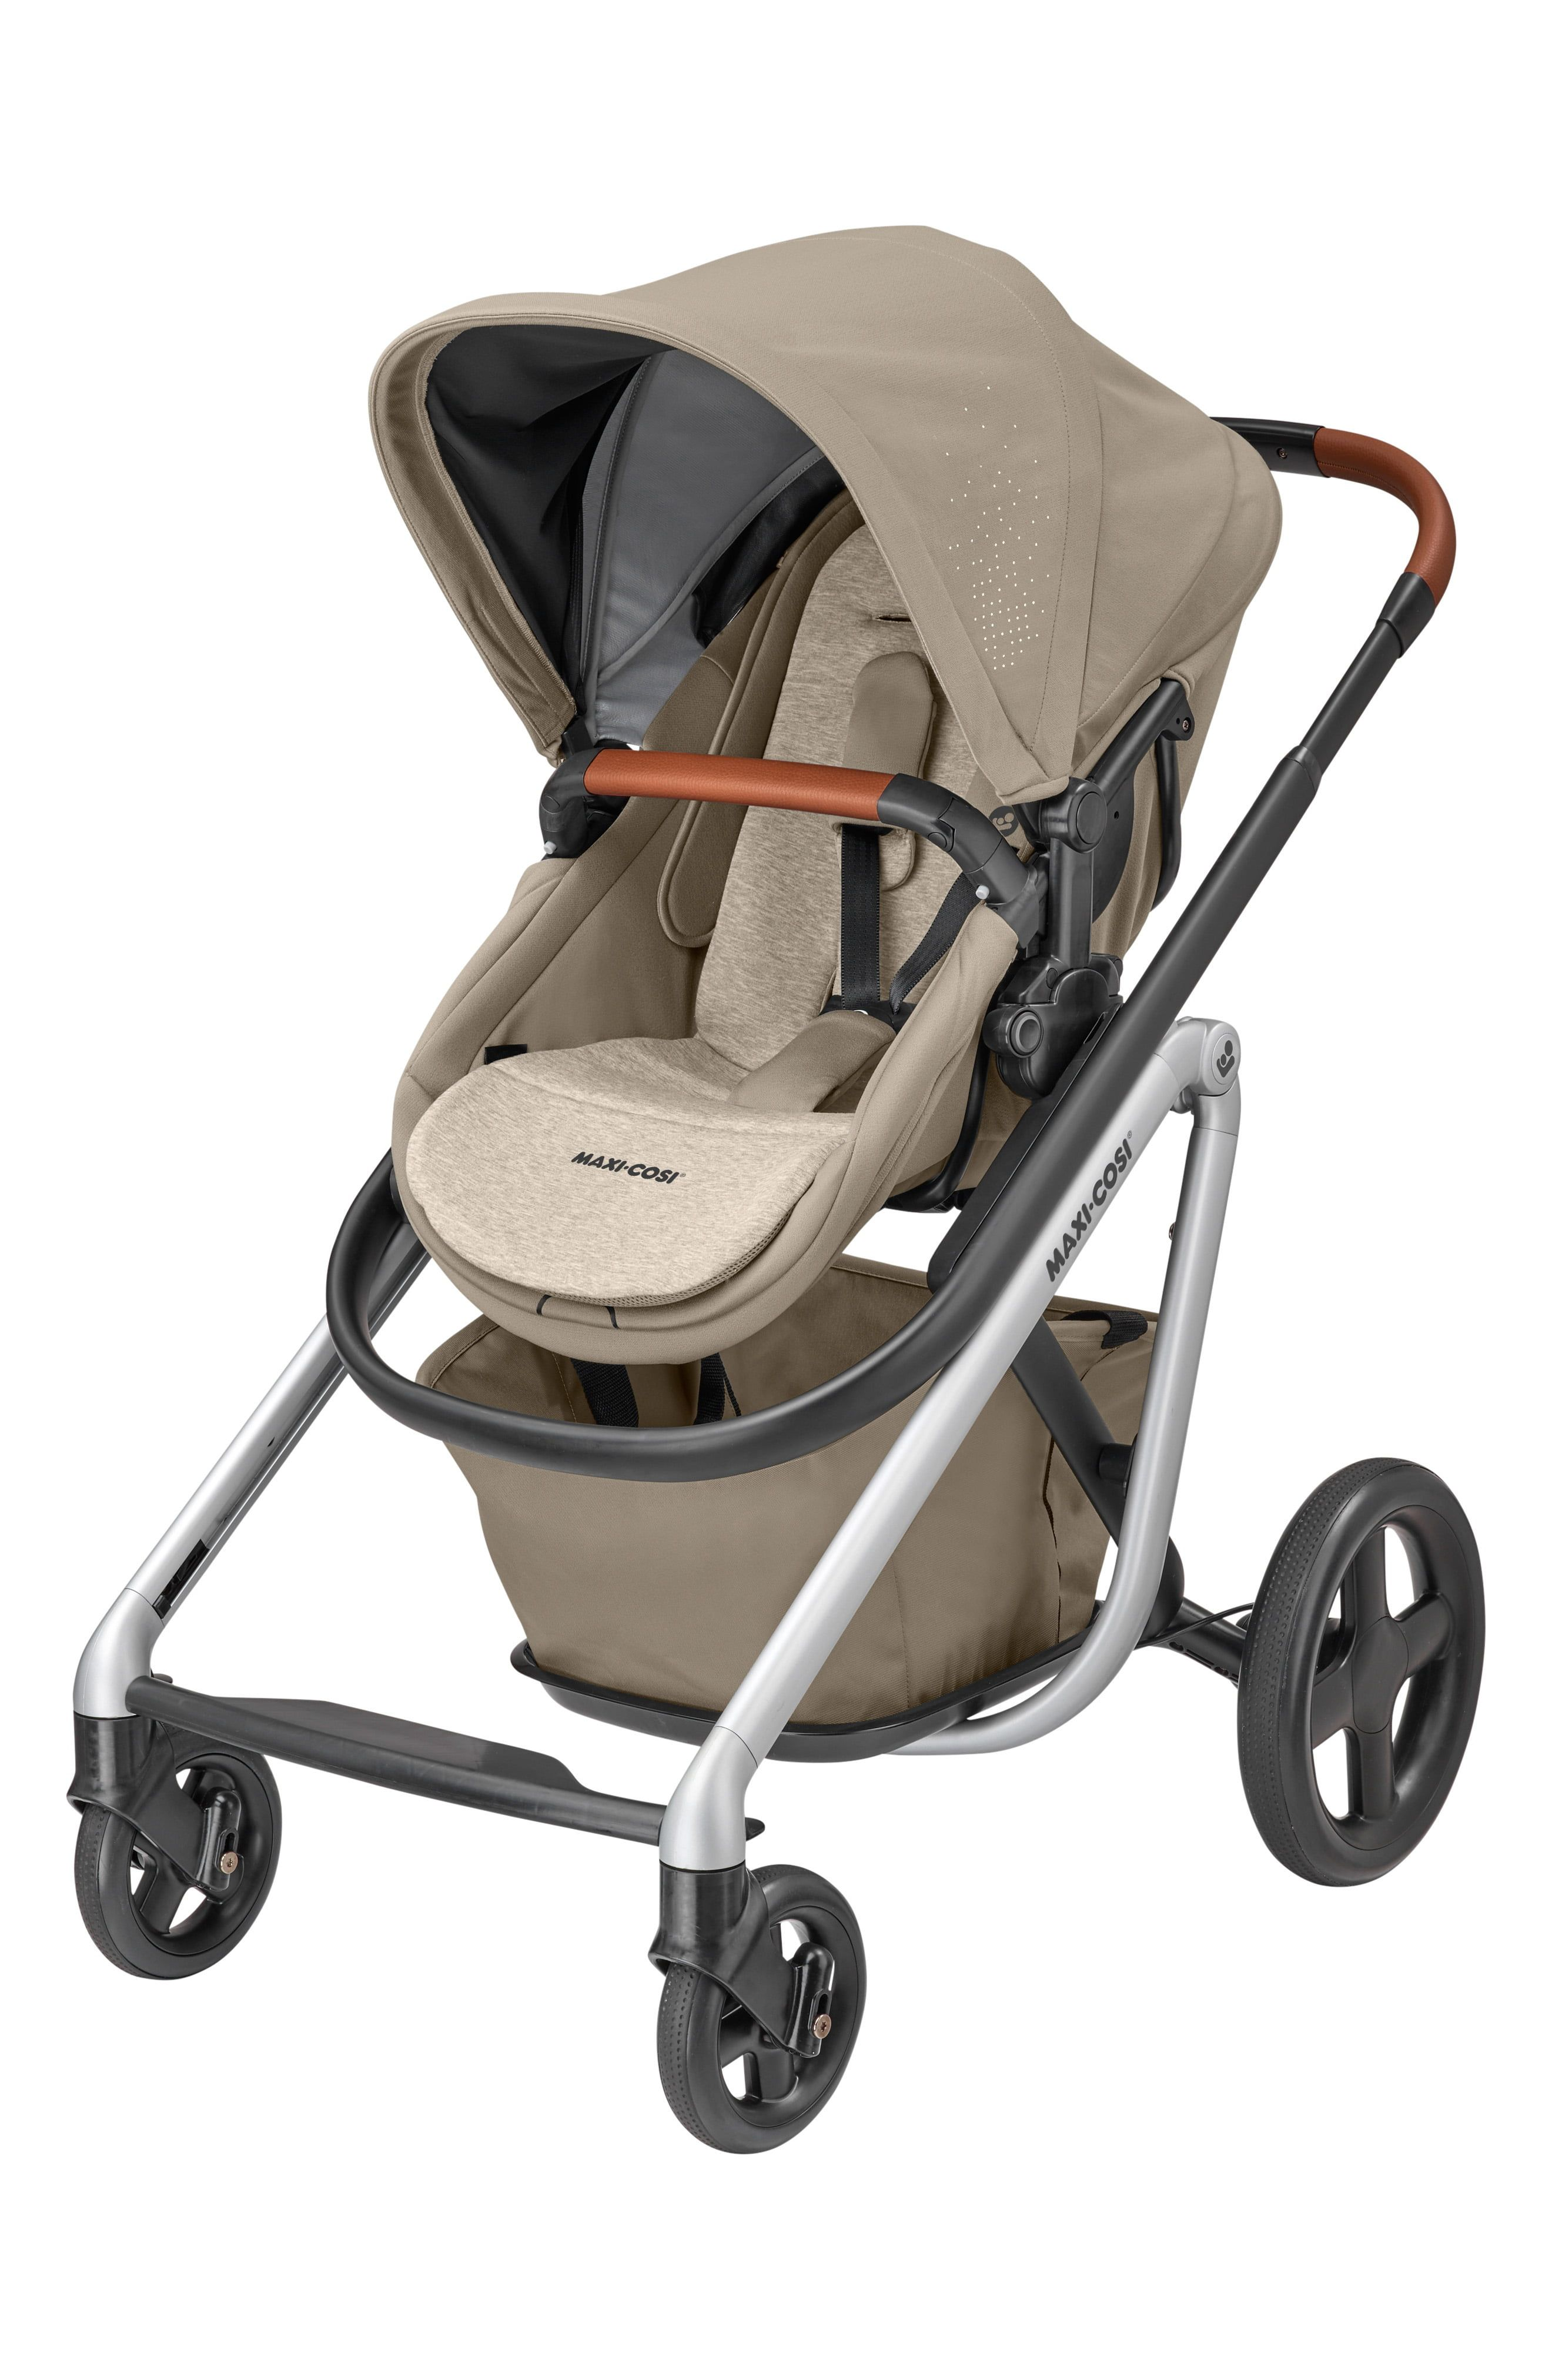 Infant Maxi Cosi Lila Modular Stroller Size One Size Brown In